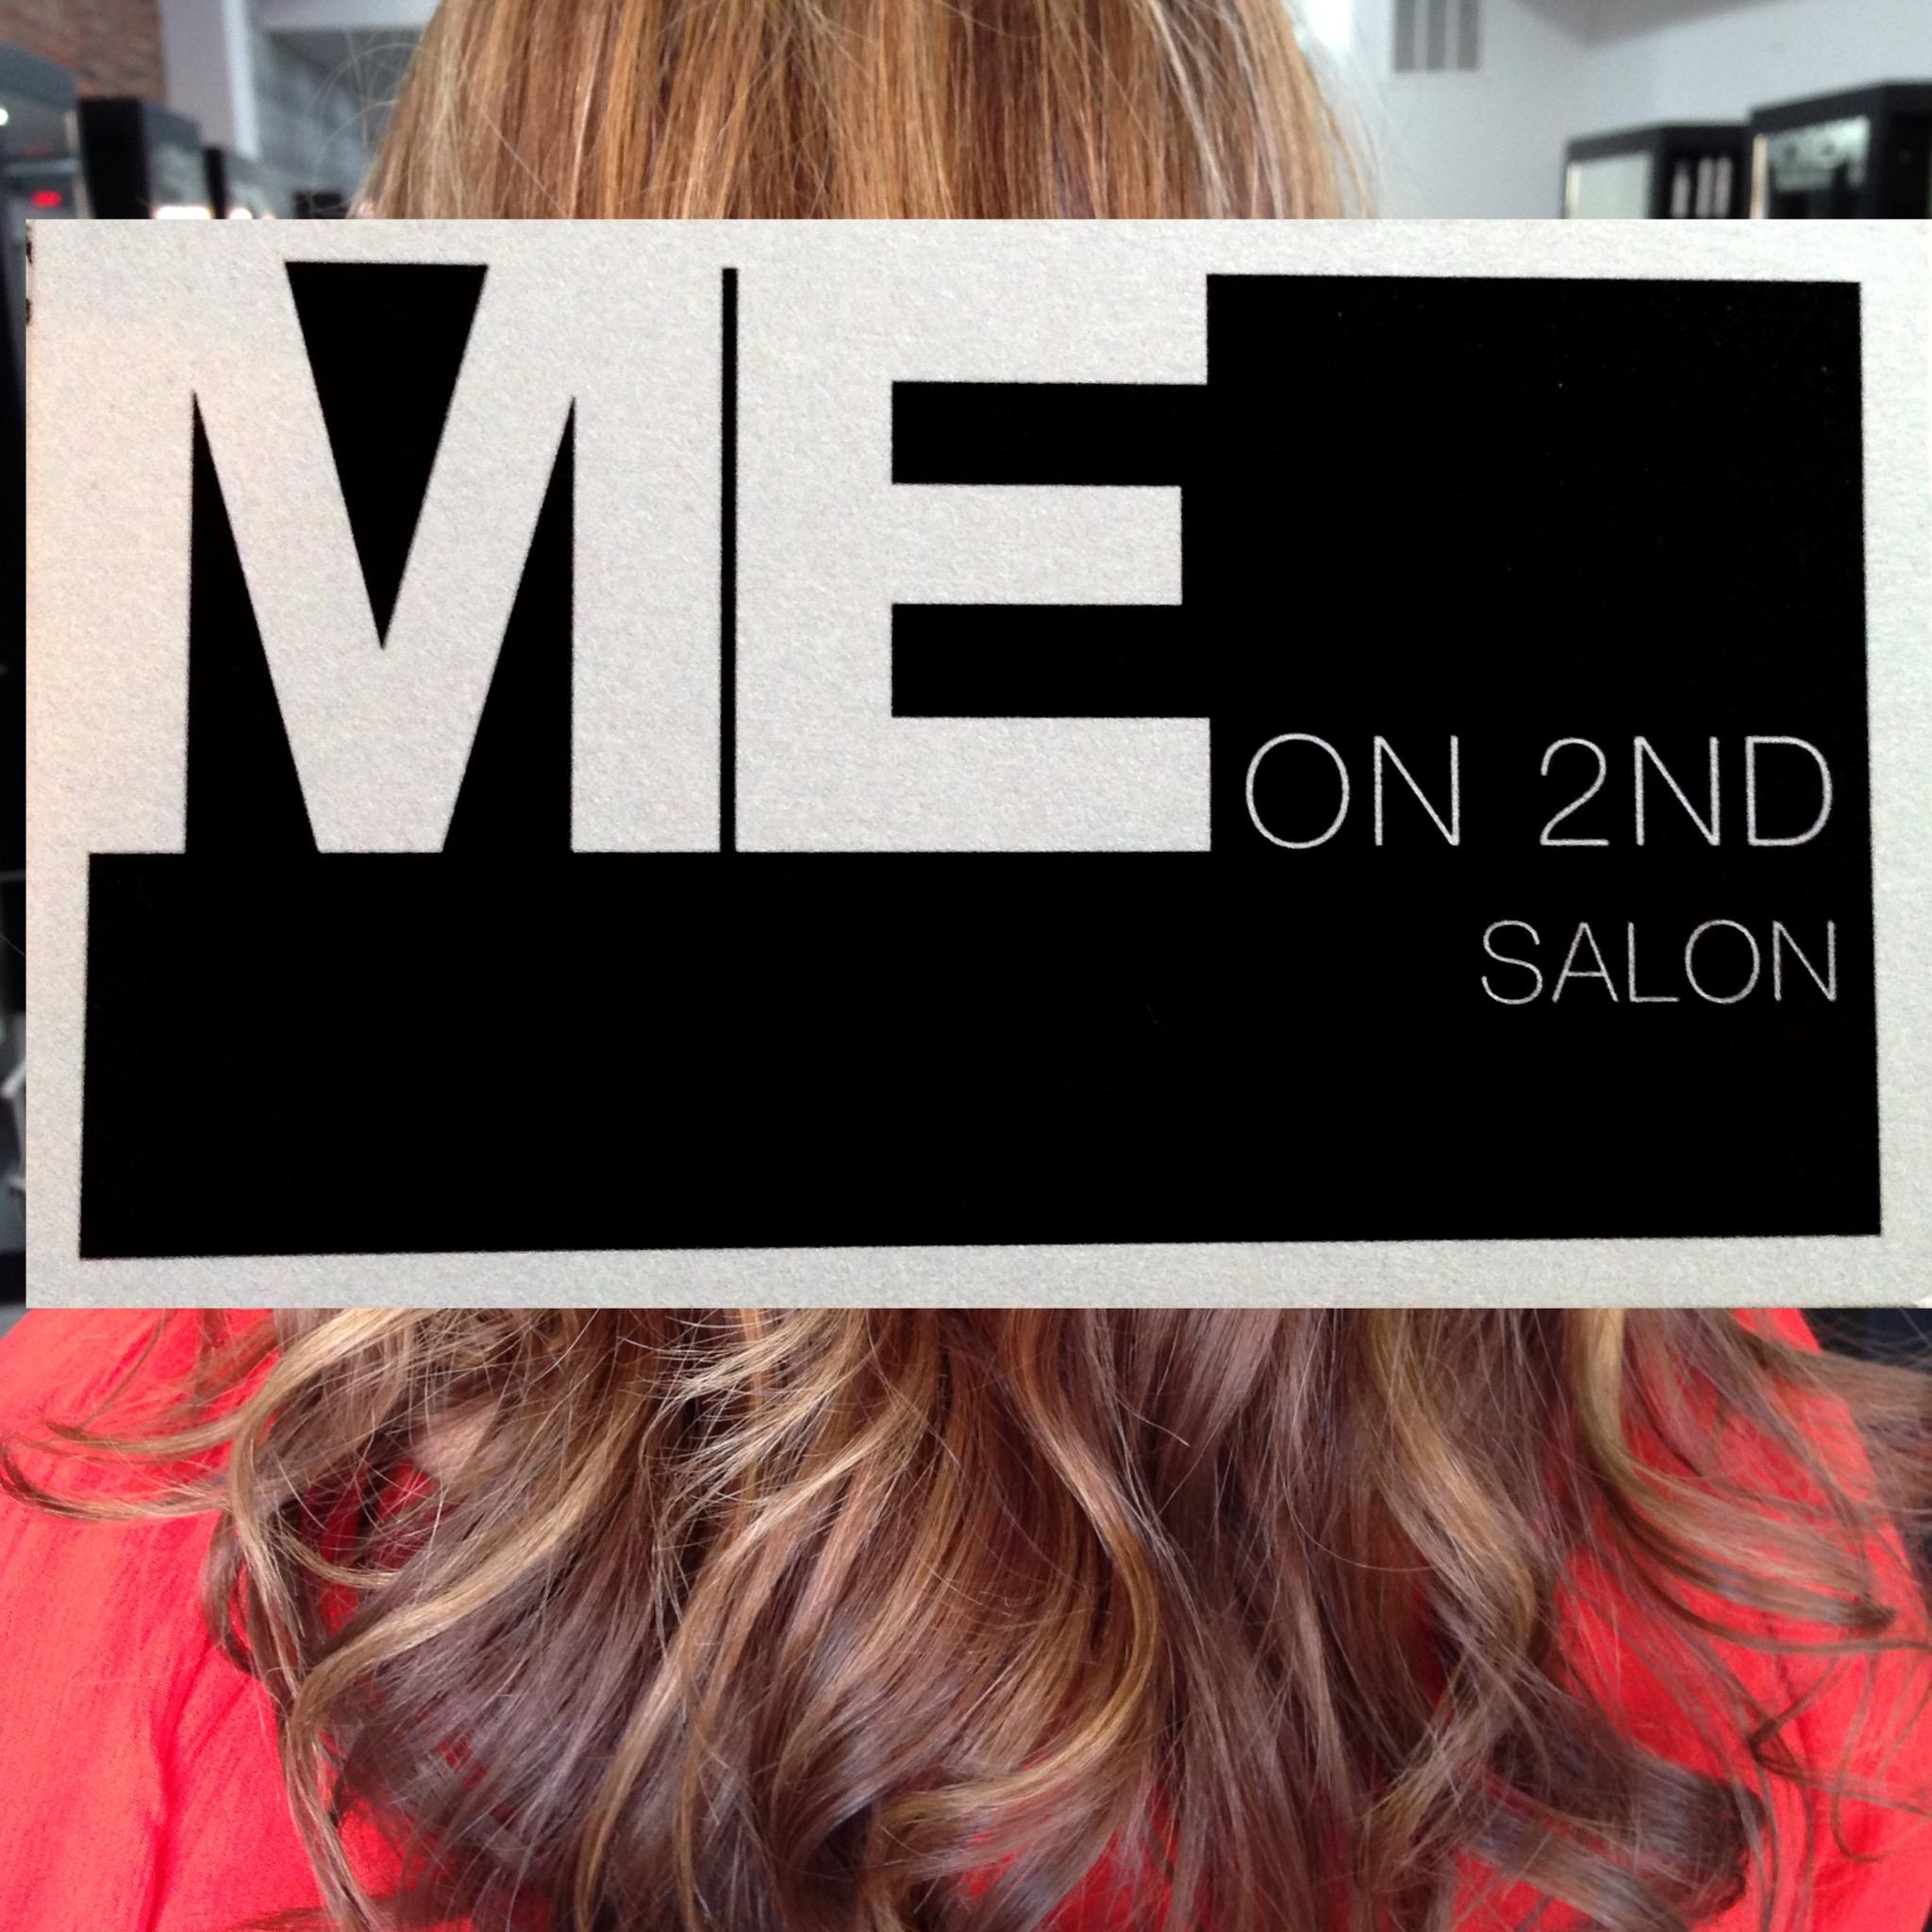 Dn A Salon At 1030 N American St Ste 801 Philadelphia